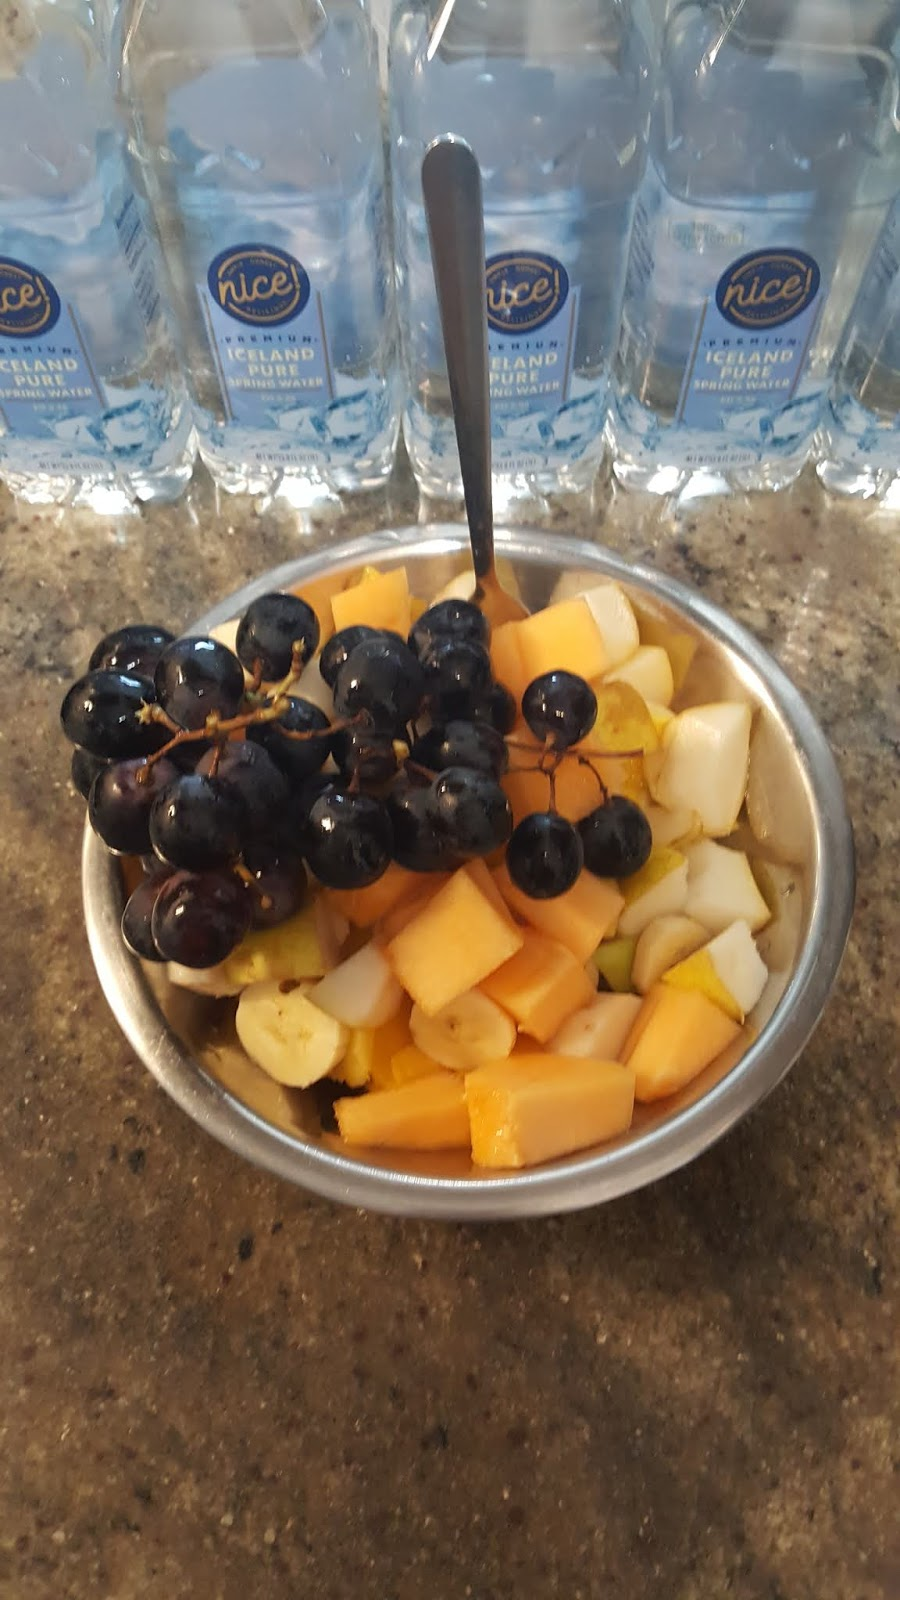 All Day Vegan Health: The healthiest breakfast, for humans